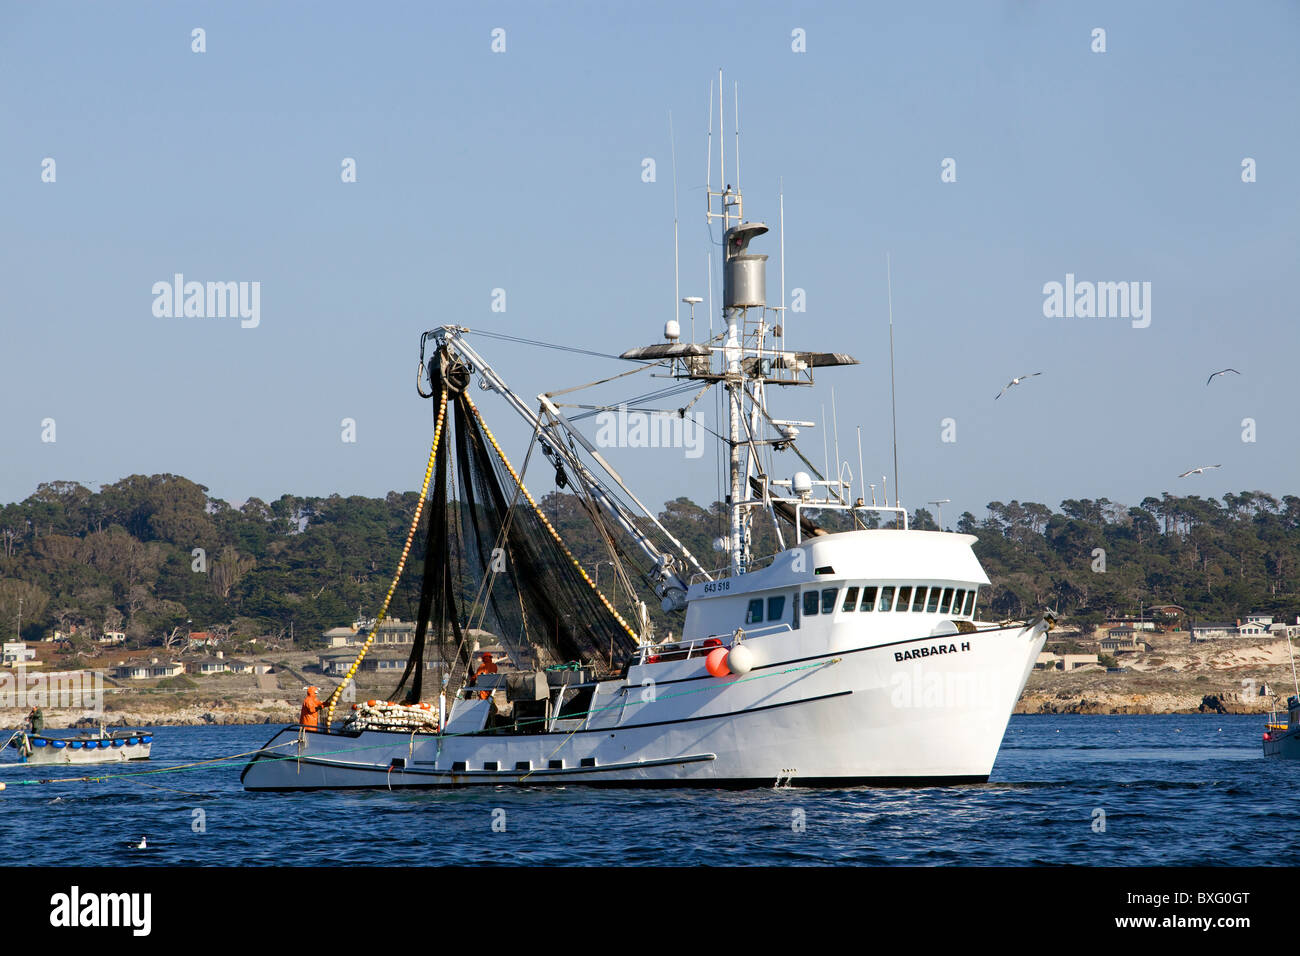 A fishing boat heads out of Monterey harbor - California. - Stock Image